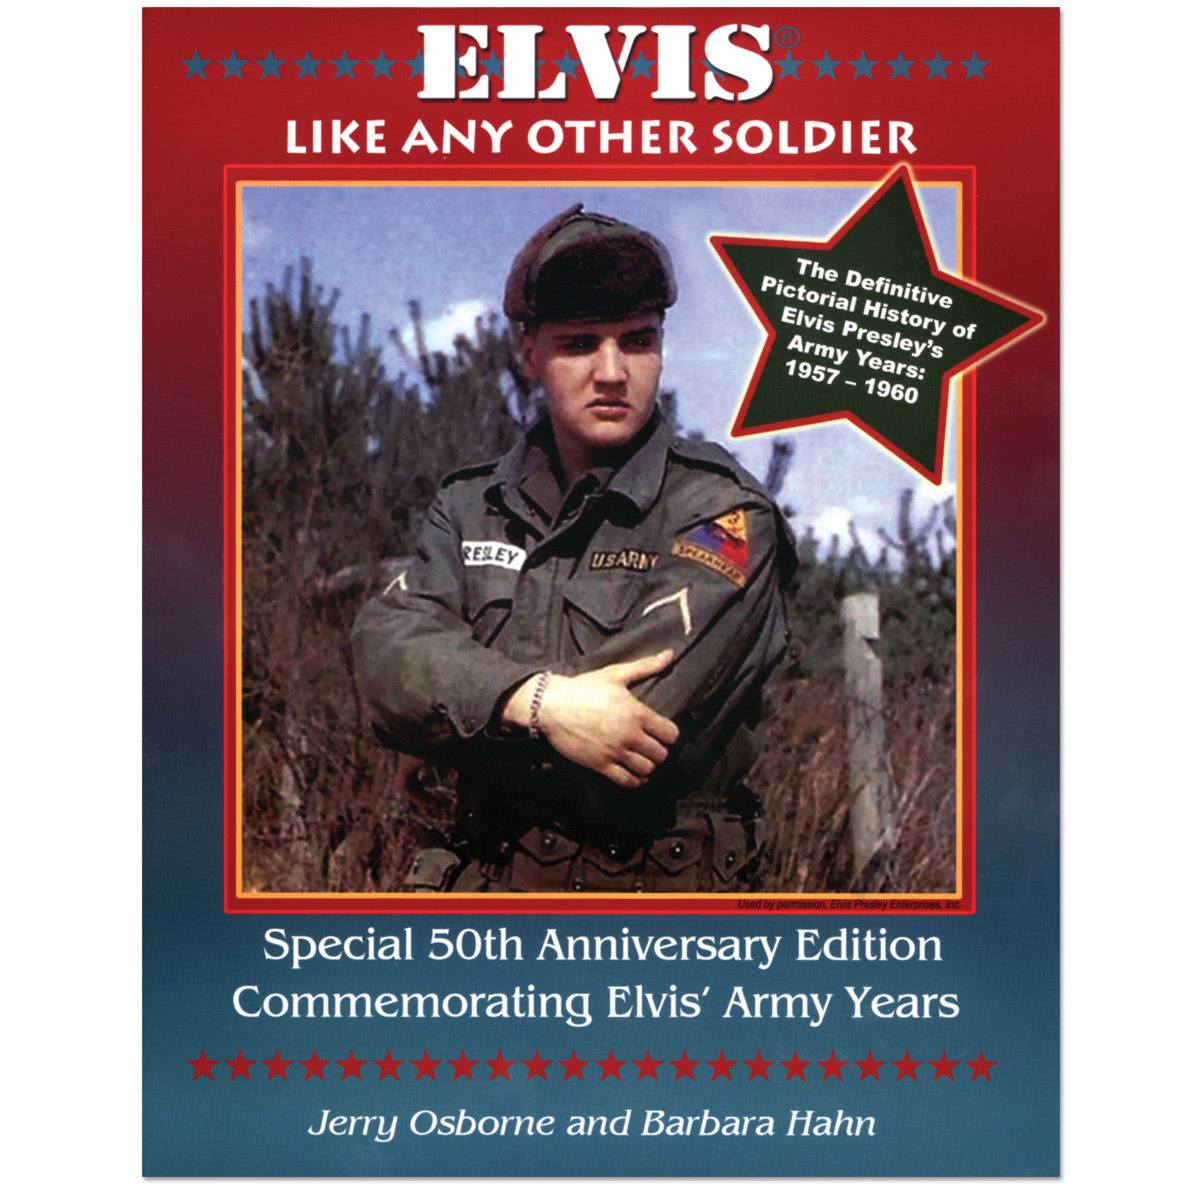 Elvis: Like Any Other Soldier Book 50th Anniversary Edition